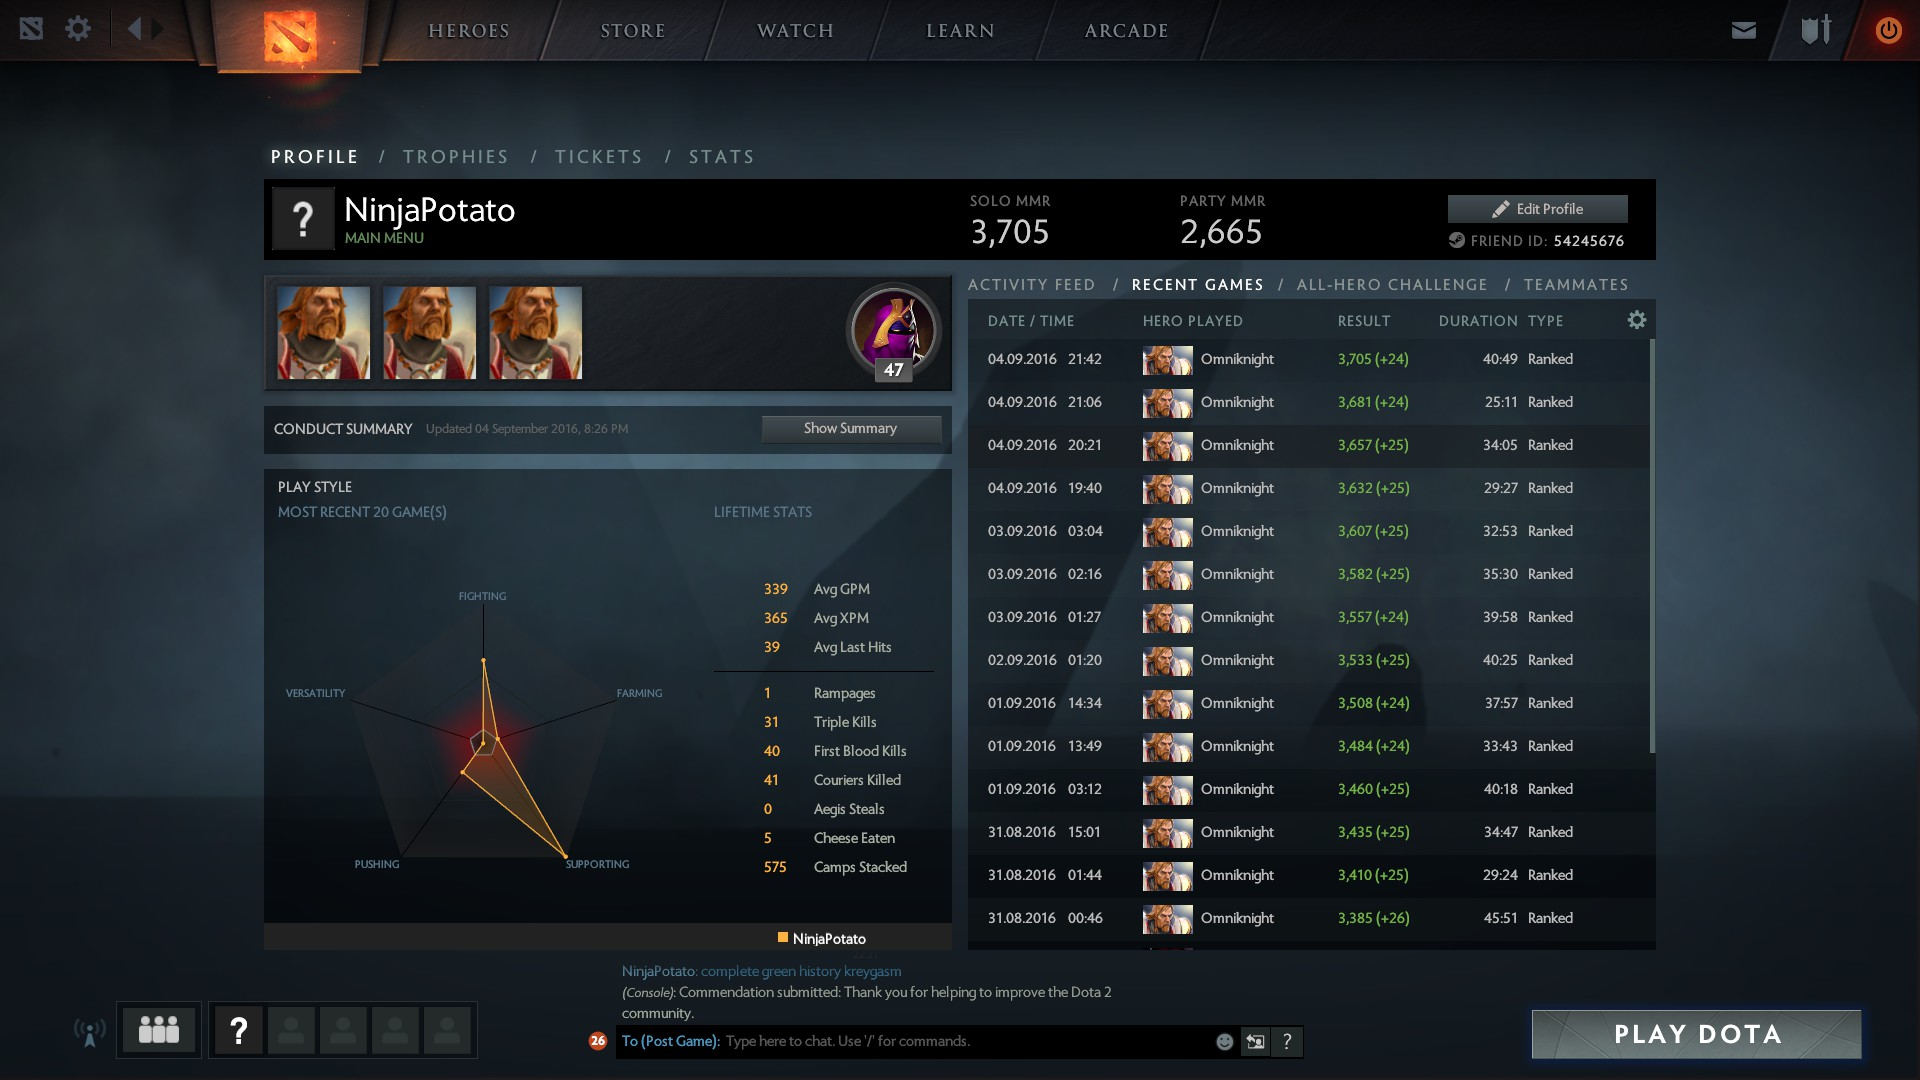 The Most Perfect Matchhistory DotA2